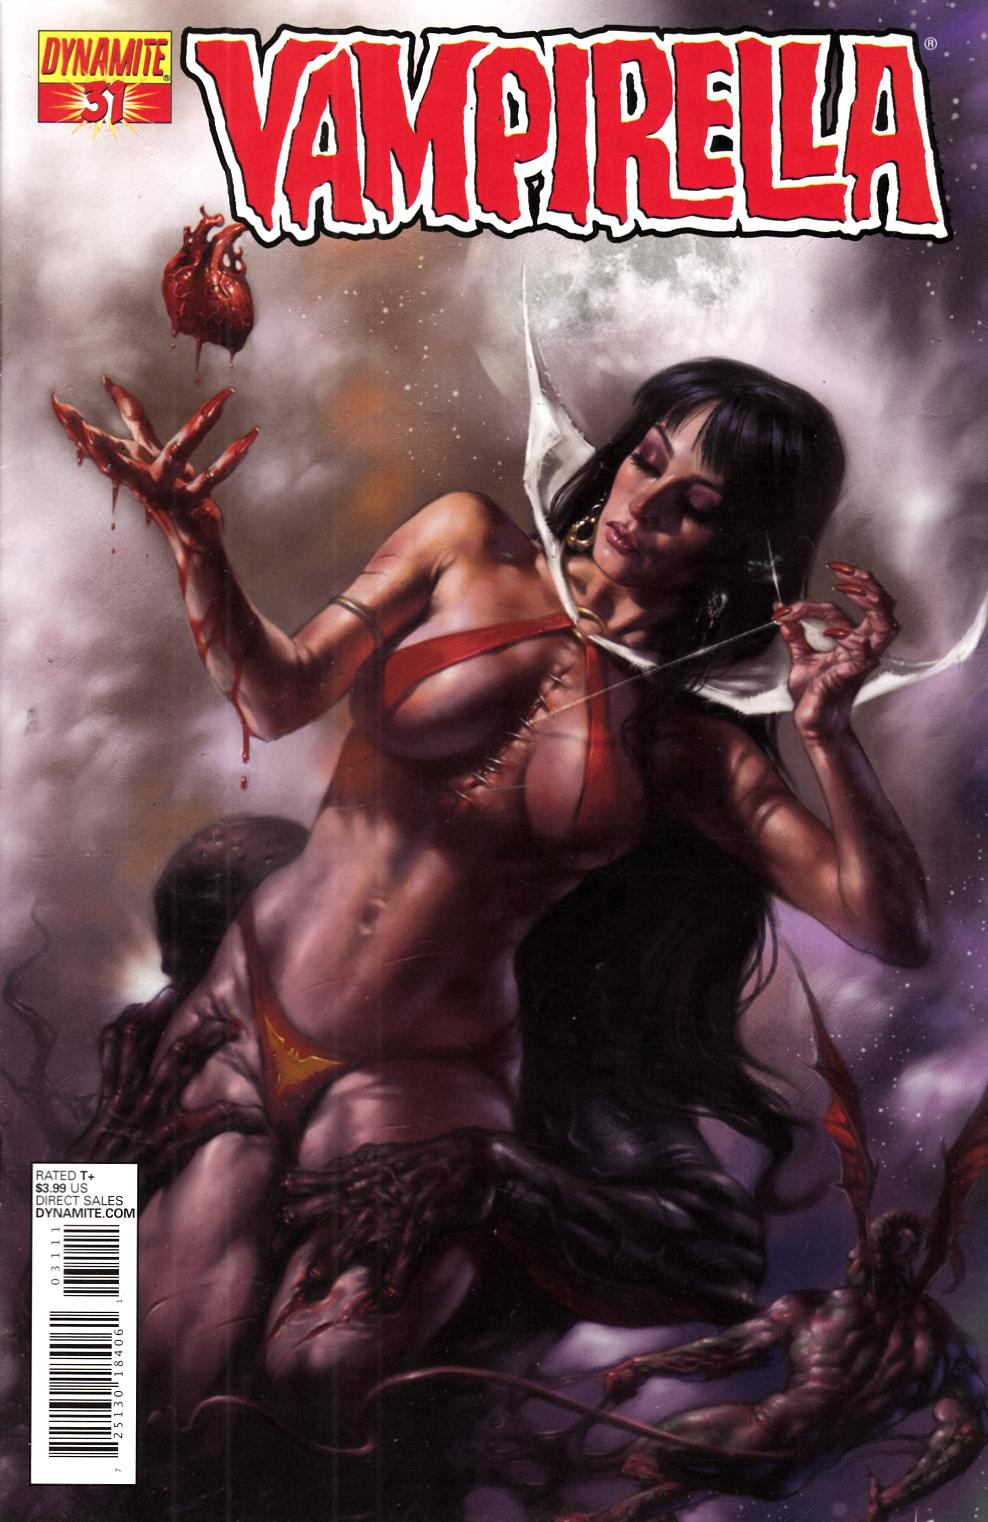 Vampirella #31 Parrillo Cover Very Fine (8.0) [Dynamite Comic] THUMBNAIL